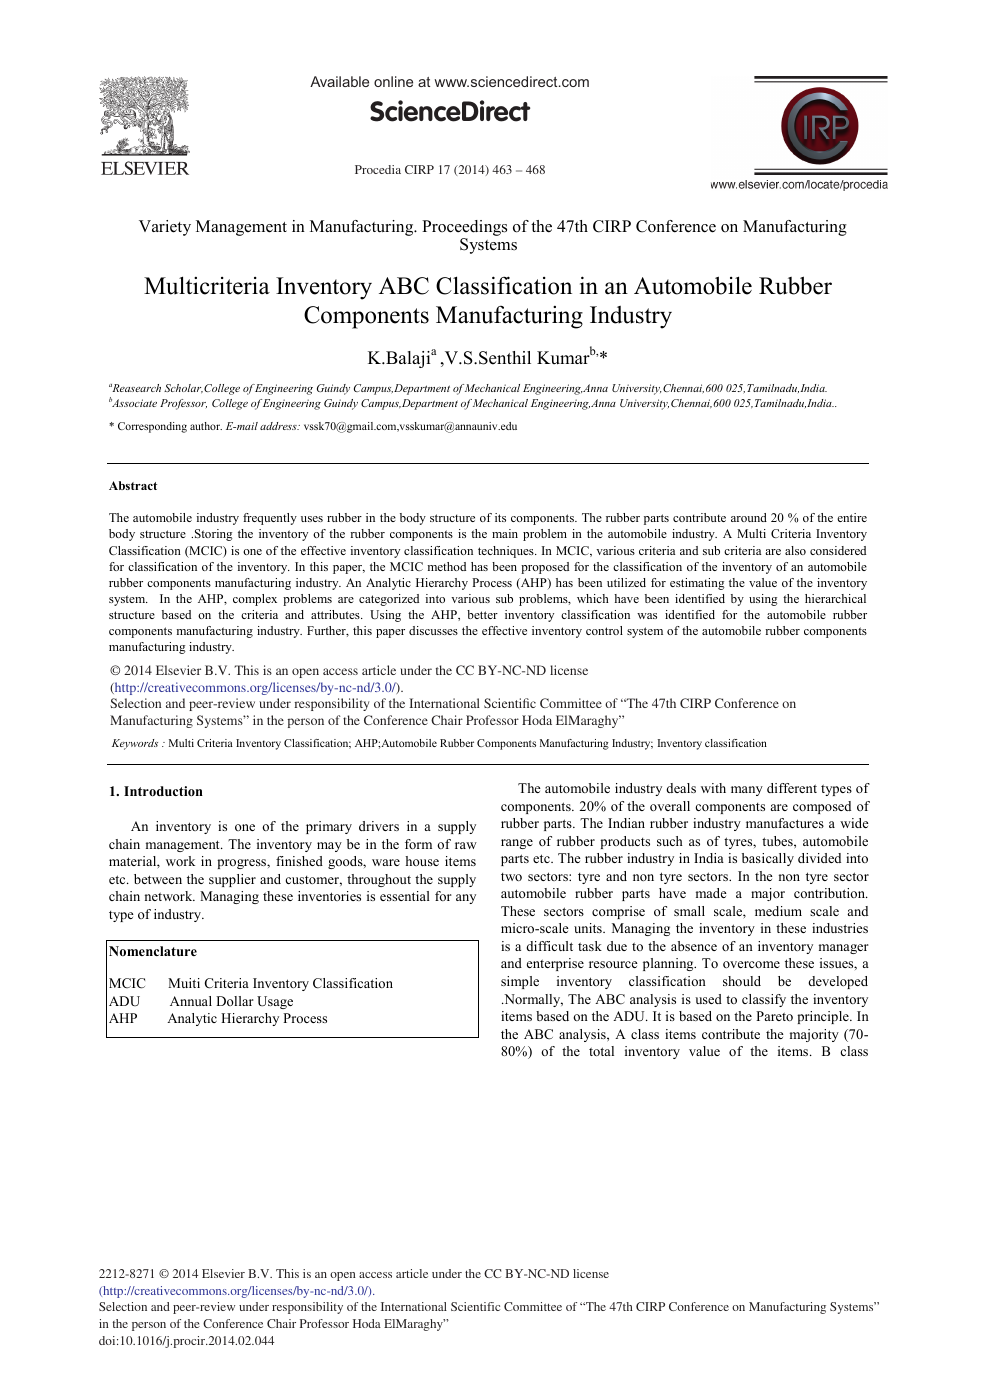 Multicriteria Inventory ABC Classification in an Automobile